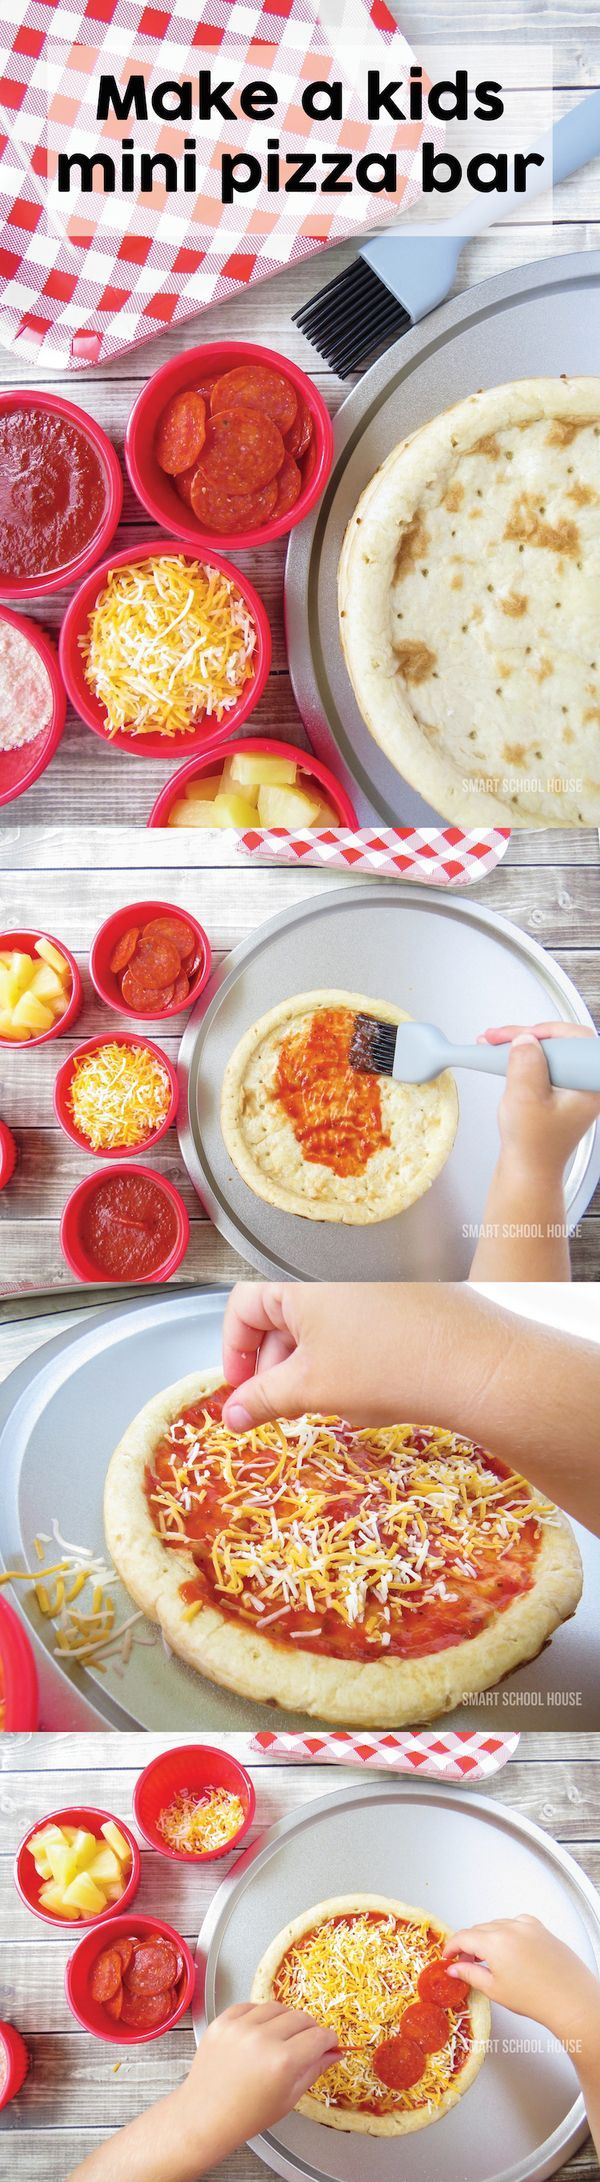 "Make a kids pizza bar! Include mini pizzas, small cups of various toppings, and a brush to ""paint"" on the pizza sauce (it keeps things cleaner)."